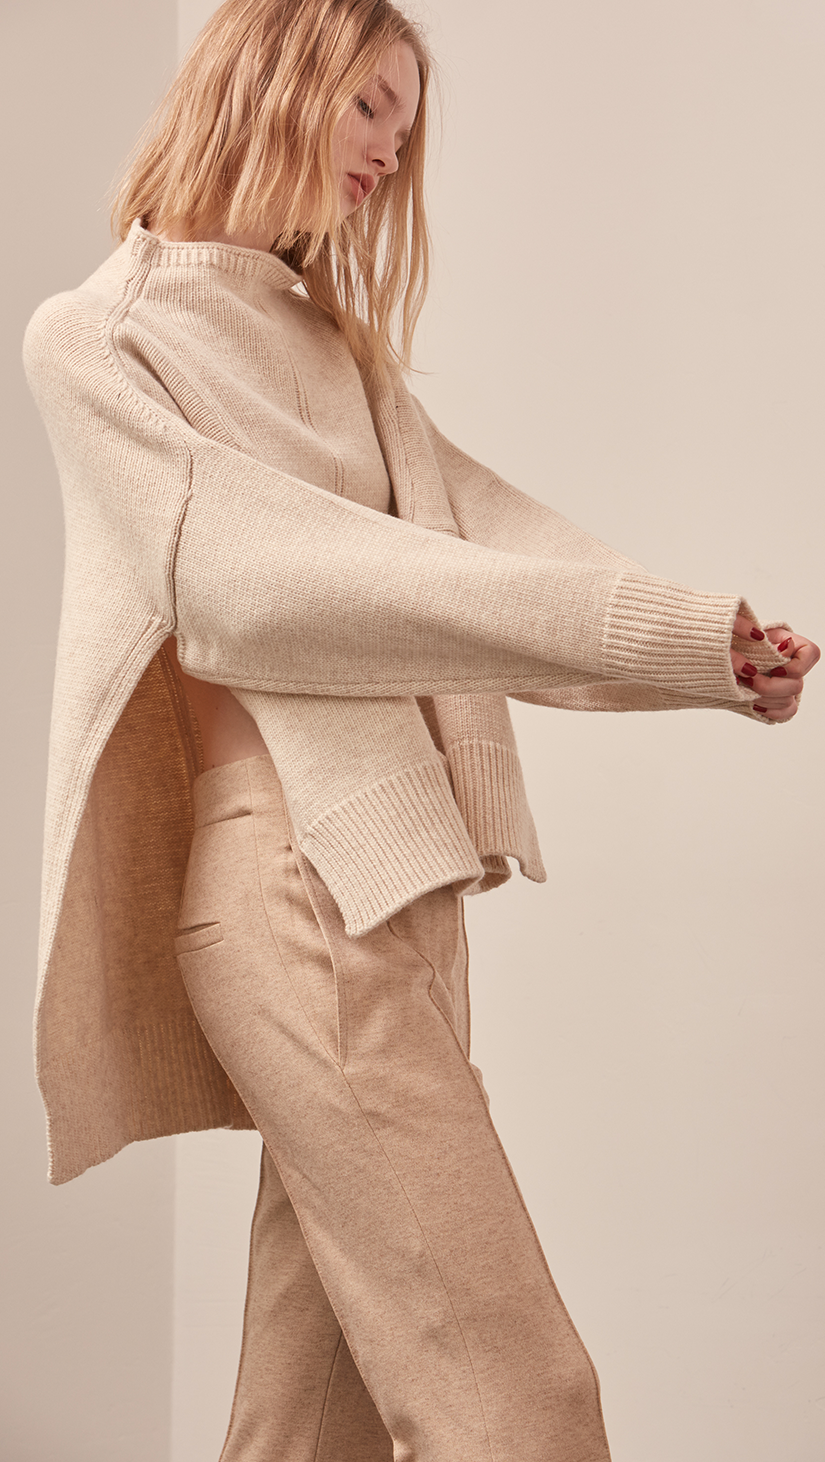 The Erin Sweater in soft oatmeal. Features rolled neckline, long sleeves, drop shoulder, side slits. Pull on. Relaxed silhouette.